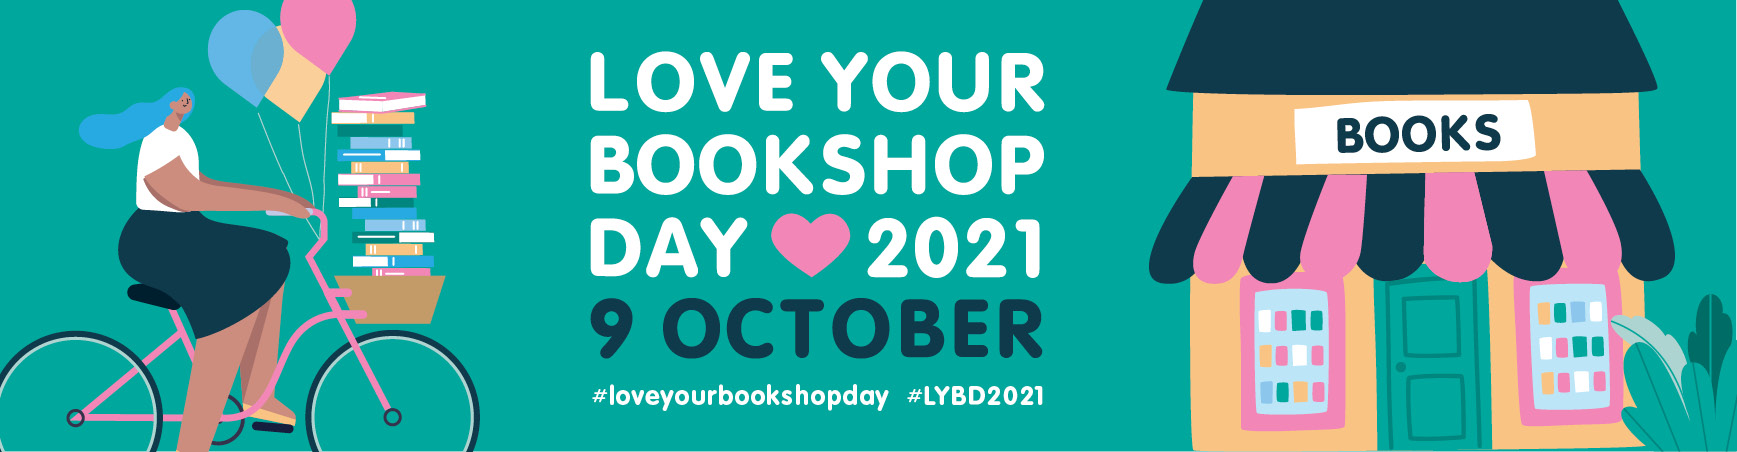 Love Your Bookshop Day 2021